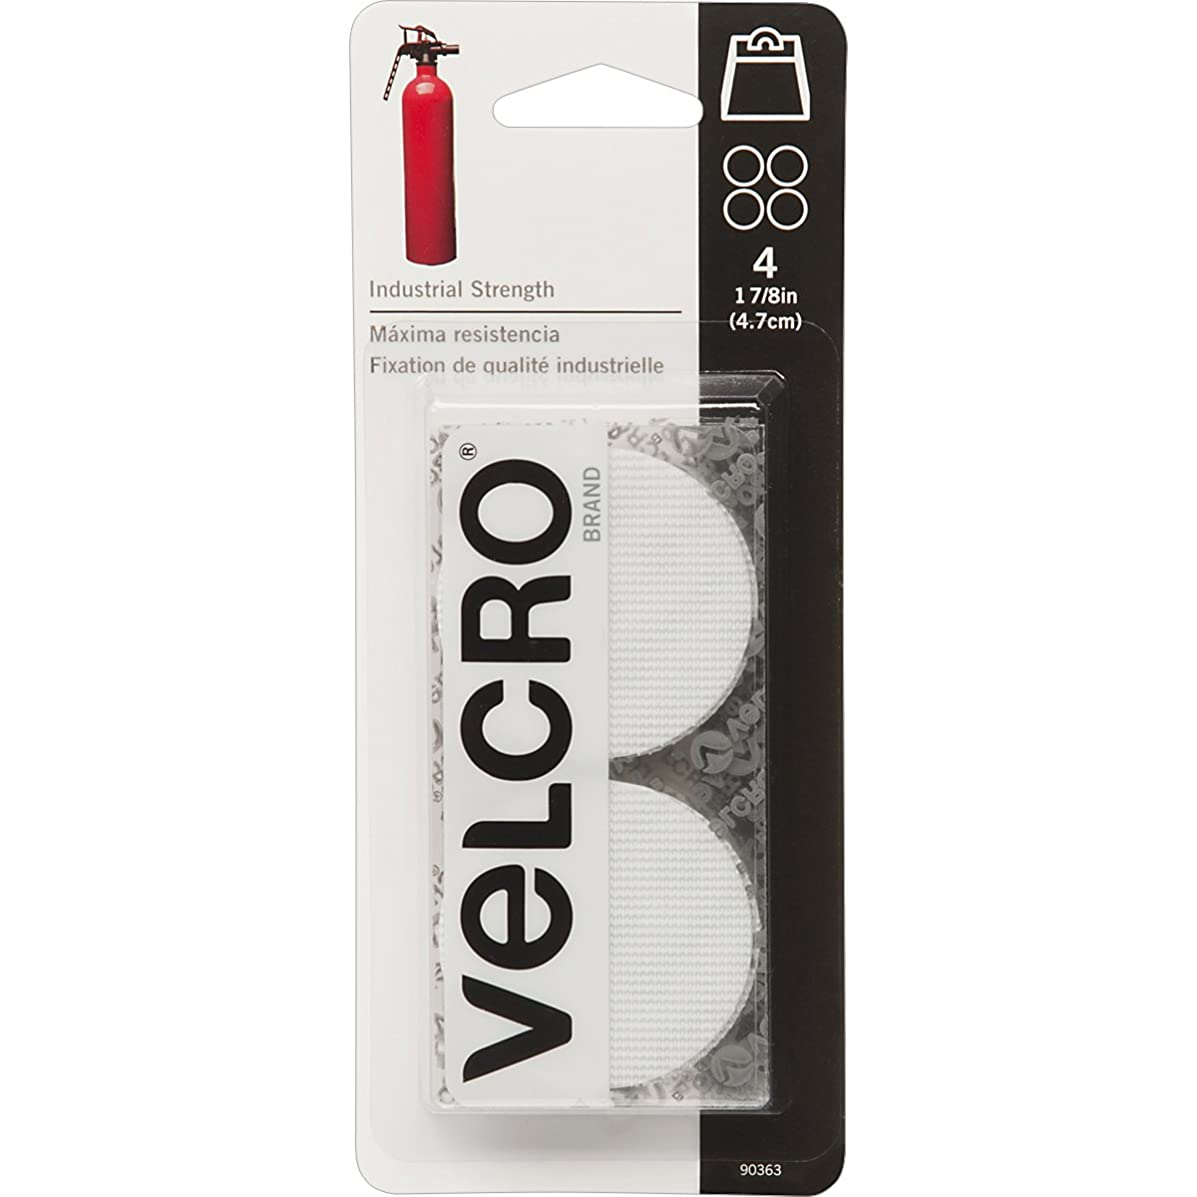 VELCRO Brand 90363 Industrial Fasteners Stick-On Adhesive   Professional Grade Heavy Duty Strength   Indoor Outdoor Use, 1 7/8in, Circles 4 Sets